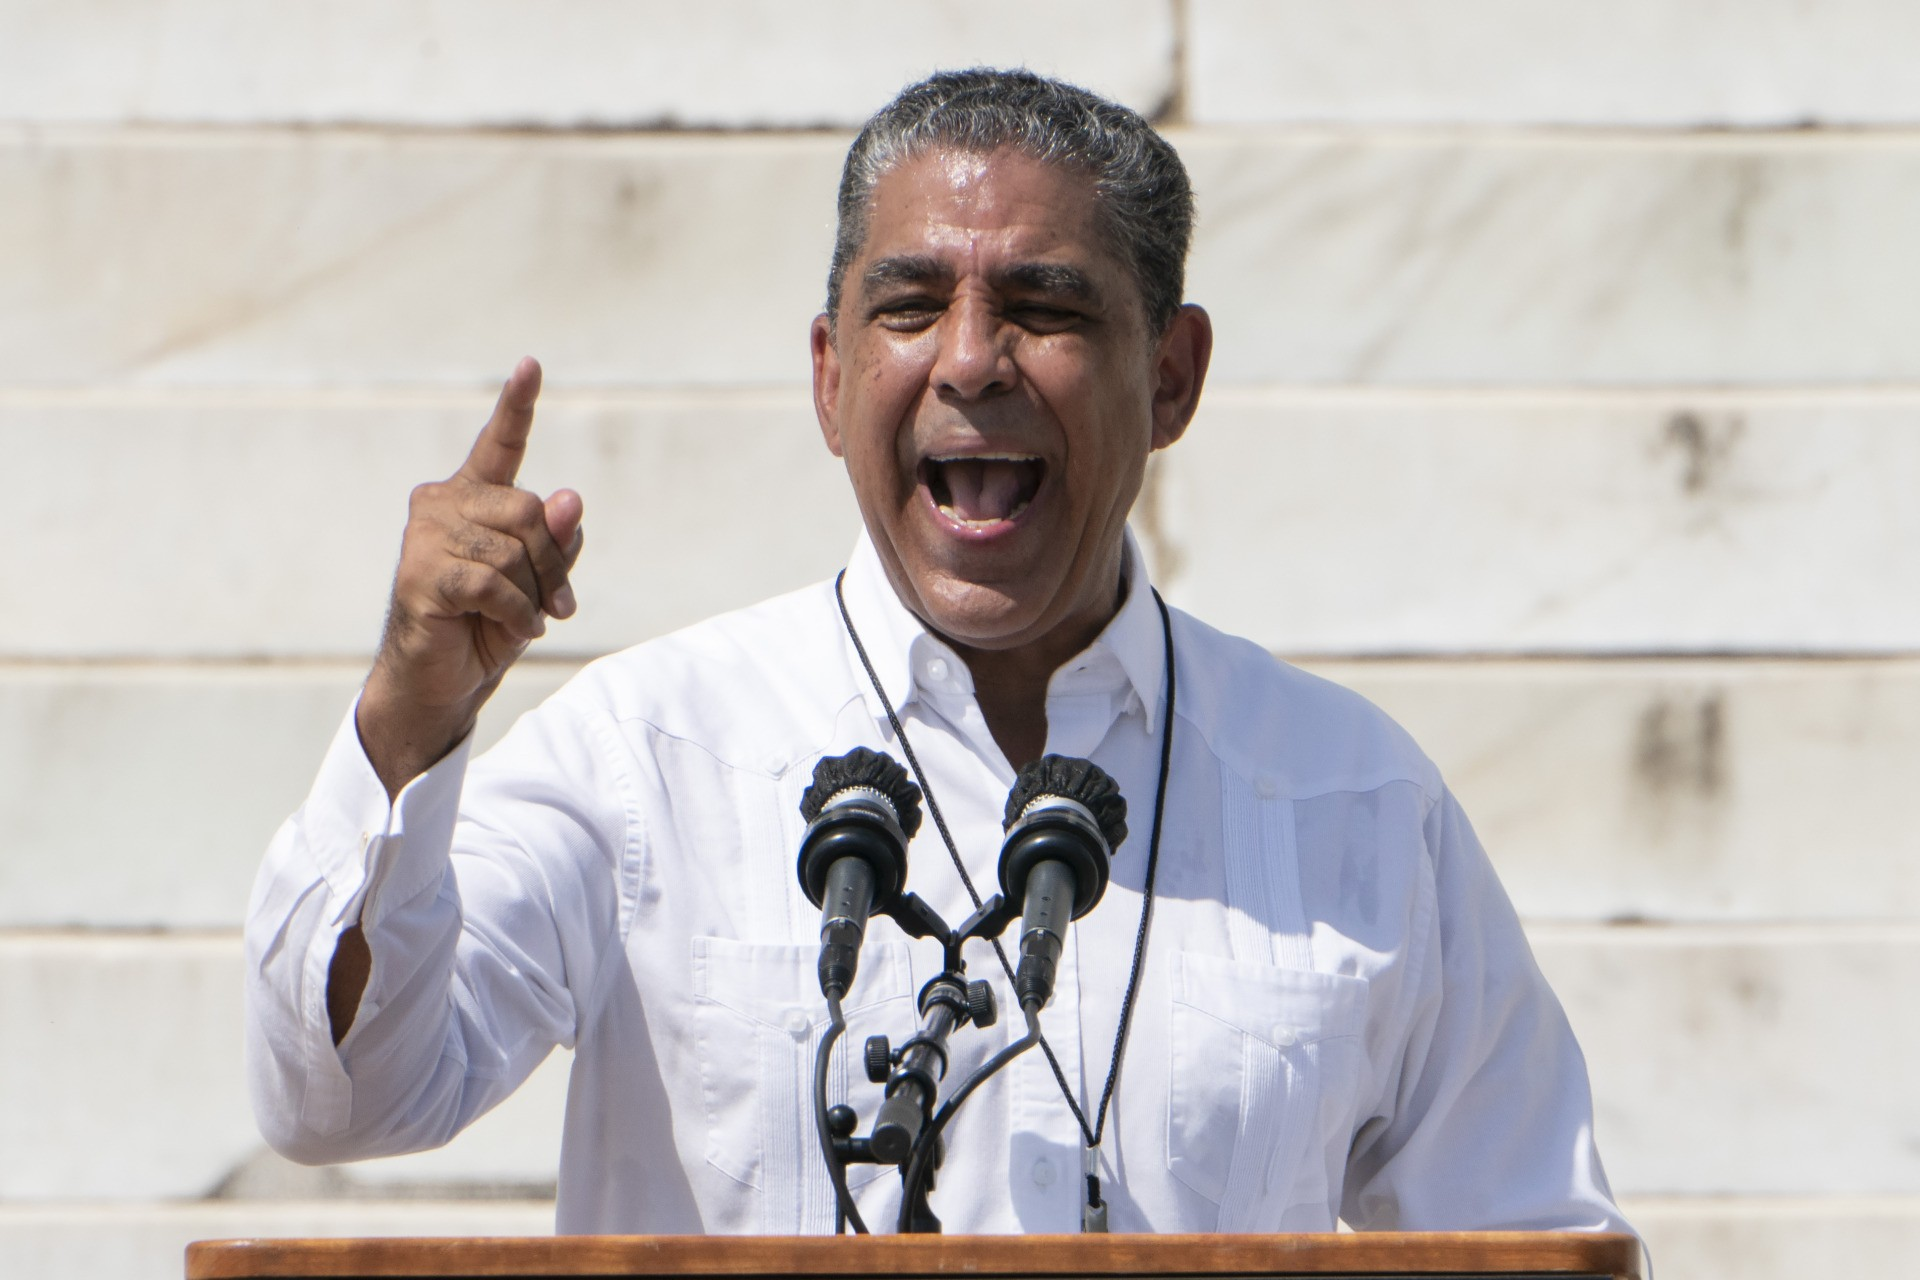 """Rep. Adriano Espaillat, D-N.Y., speaks during the """"Commitment March: Get Your Knee Off Our Necks"""" protest against racism and police brutality, on August 28, 2020, in Washington, DC. - Anti-racism protesters marched on the streets of the US capital on Friday, after a white officer's shooting of African American Jacob Blake. The protester also marked the 57th anniversary of civil rights leader Martin Luther King's historic """"I Have a Dream"""" speech delivered at the Lincoln Memorial. (Photo by Jacquelyn Martin / POOL / AFP) (Photo by JACQUELYN MARTIN/POOL/AFP via Getty Images)"""